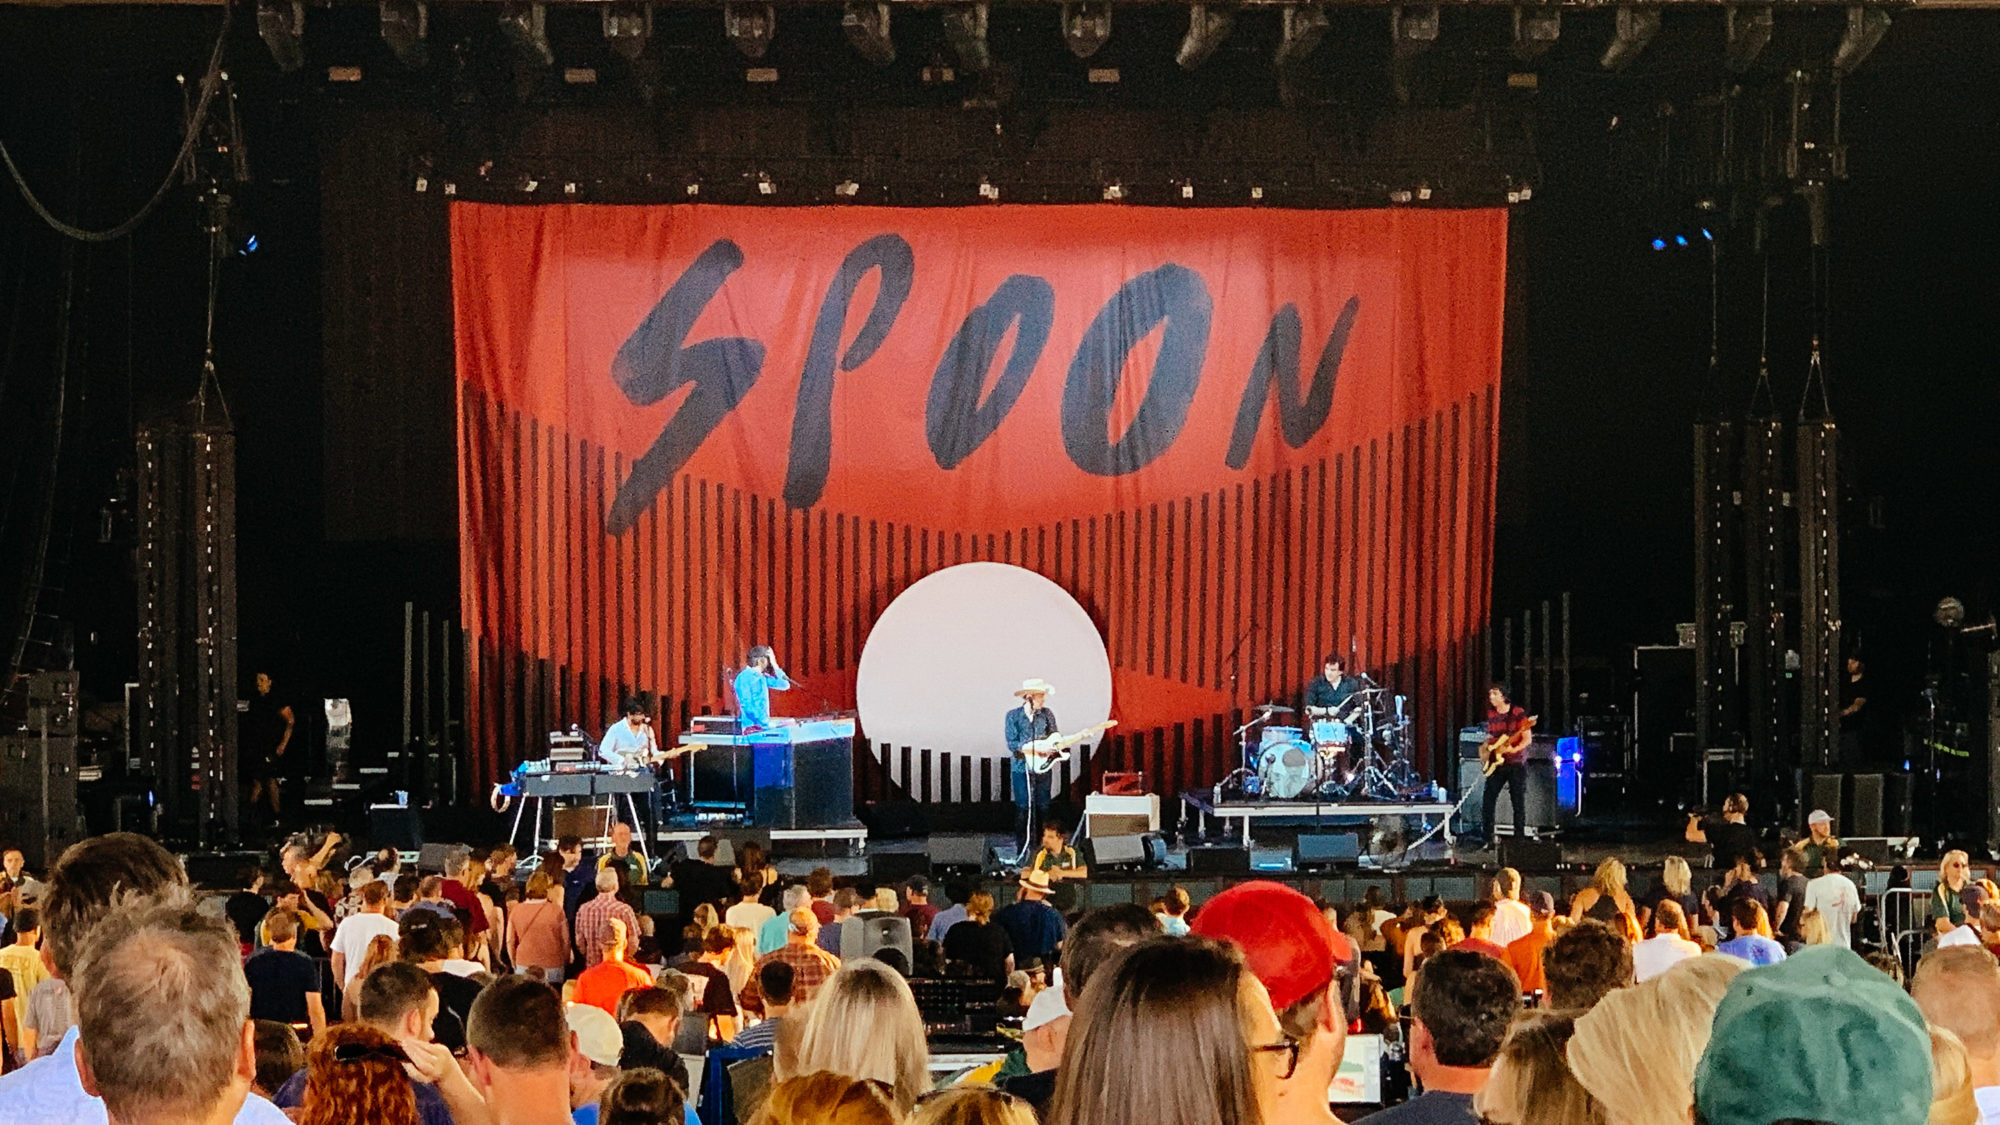 Spoon, the band